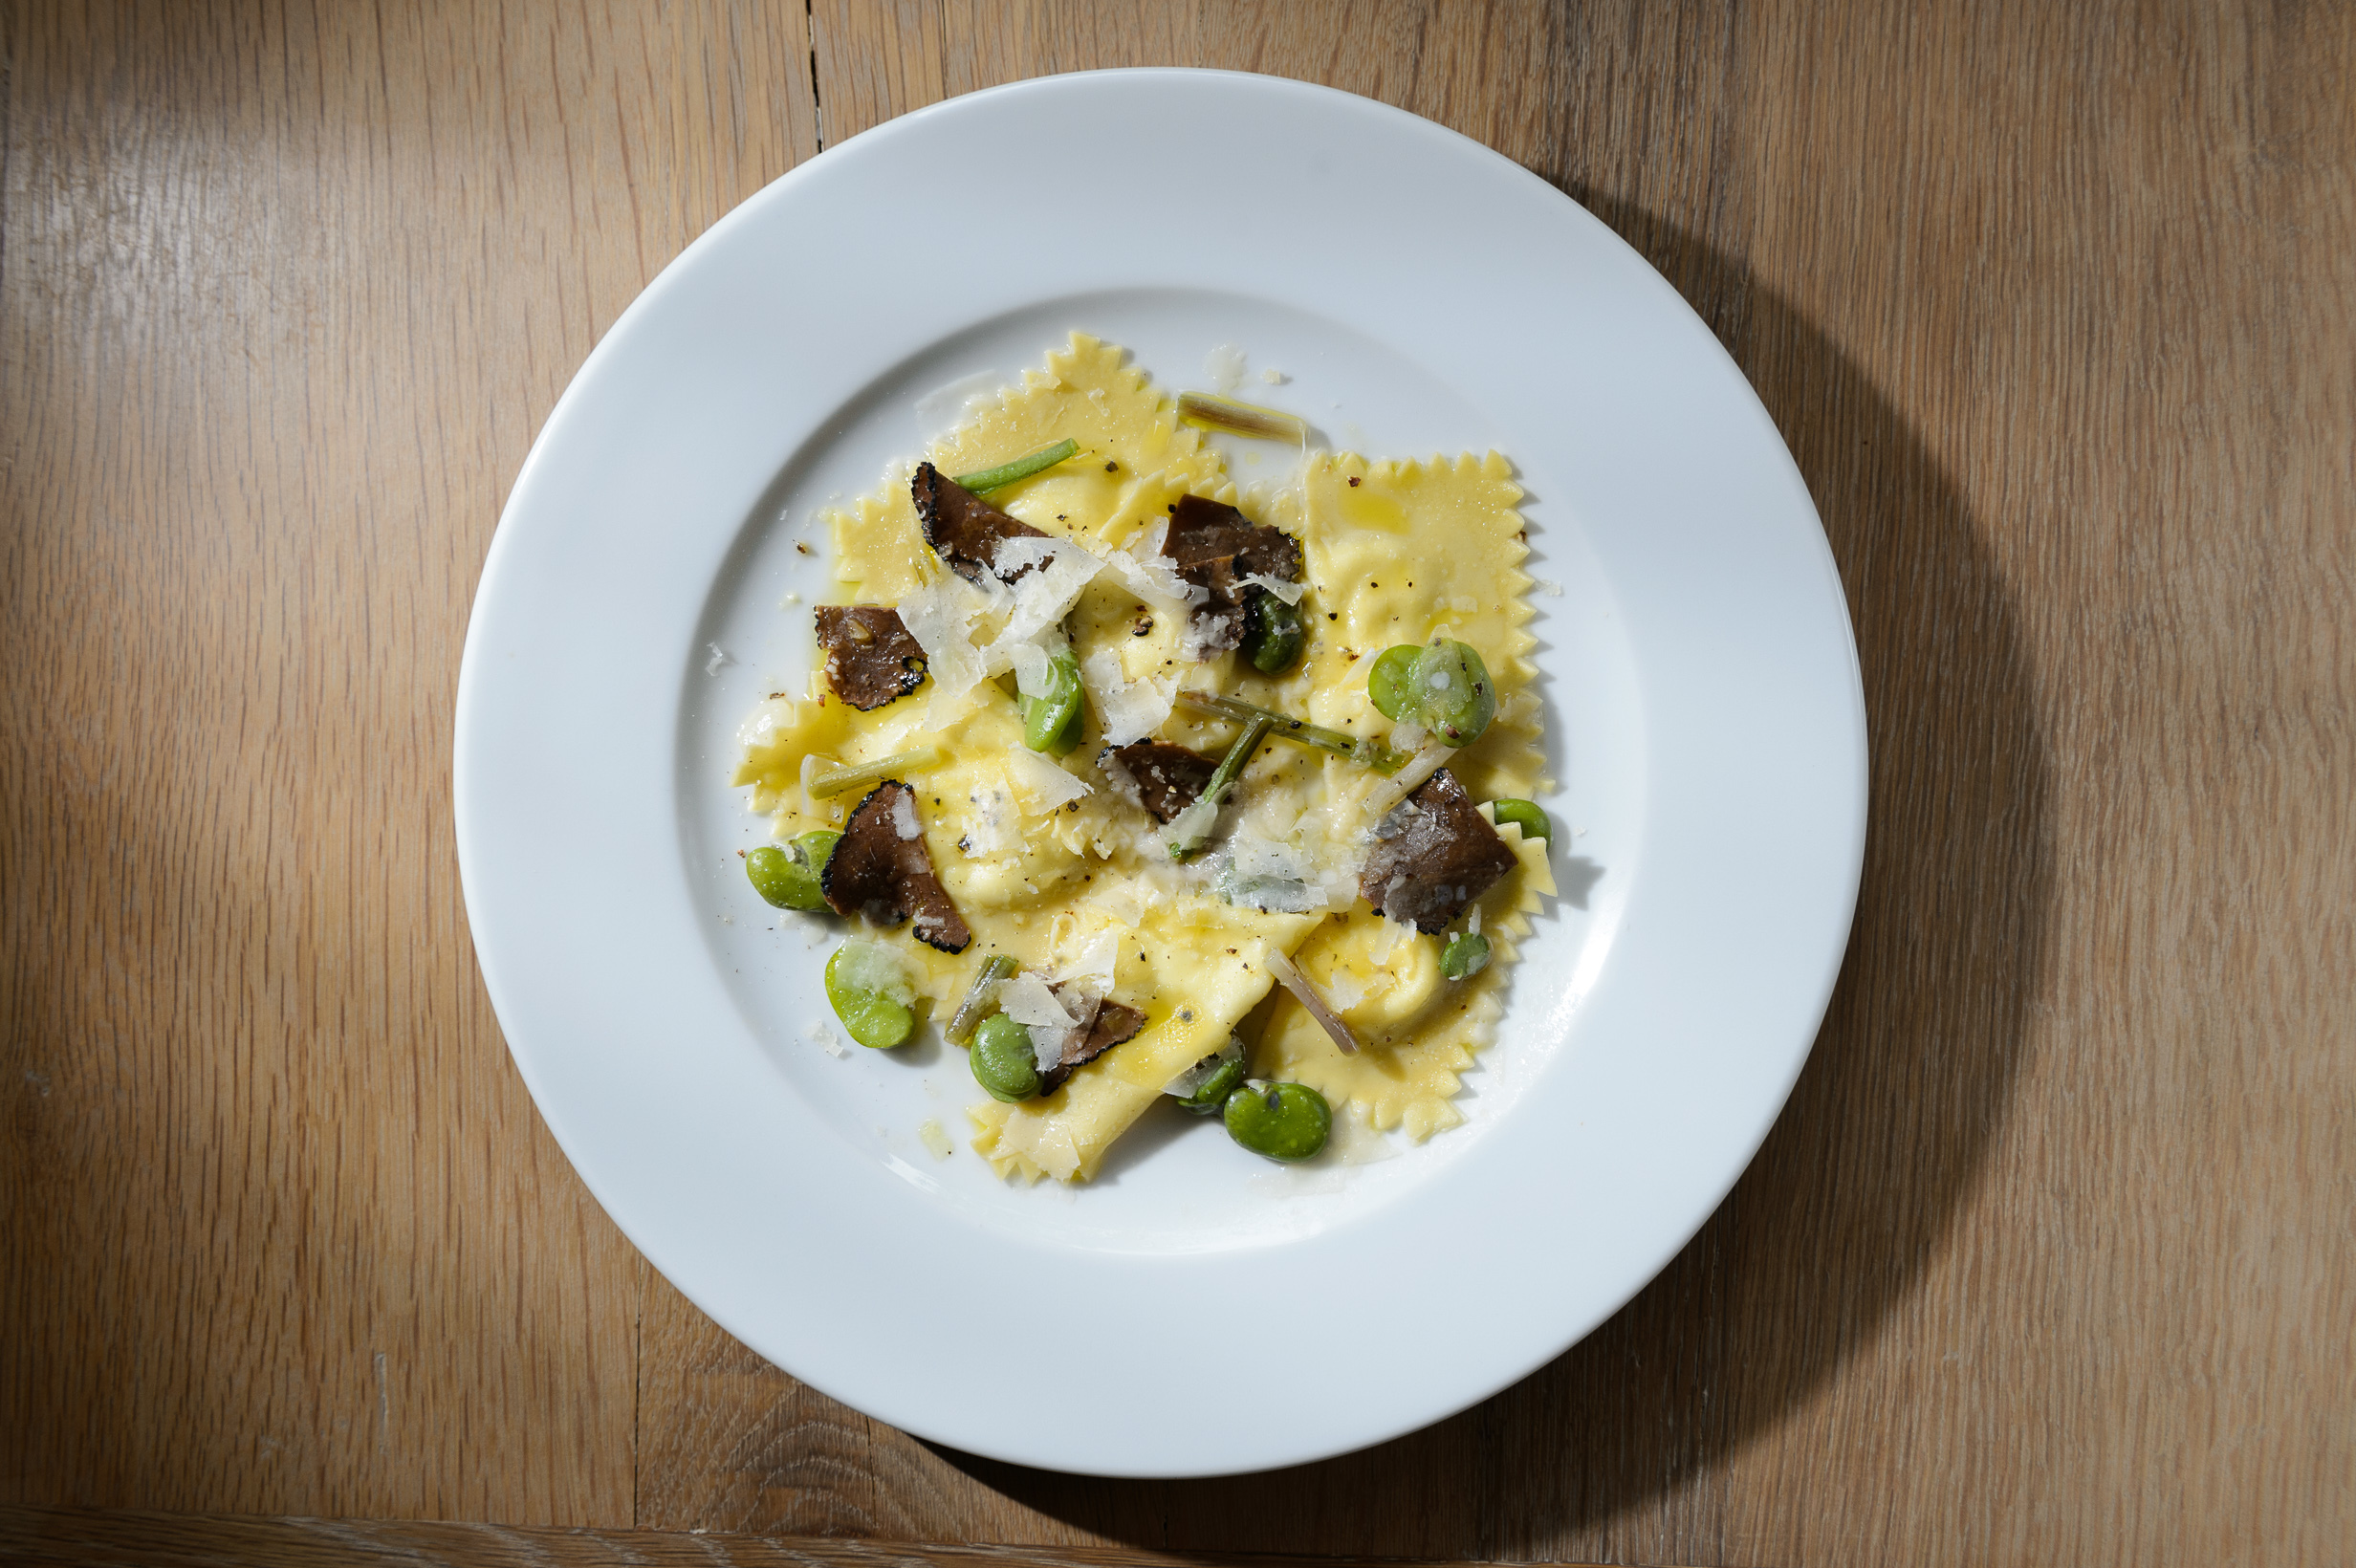 <p>Ravioli with fava beans at Café Altro Paradiso</p>